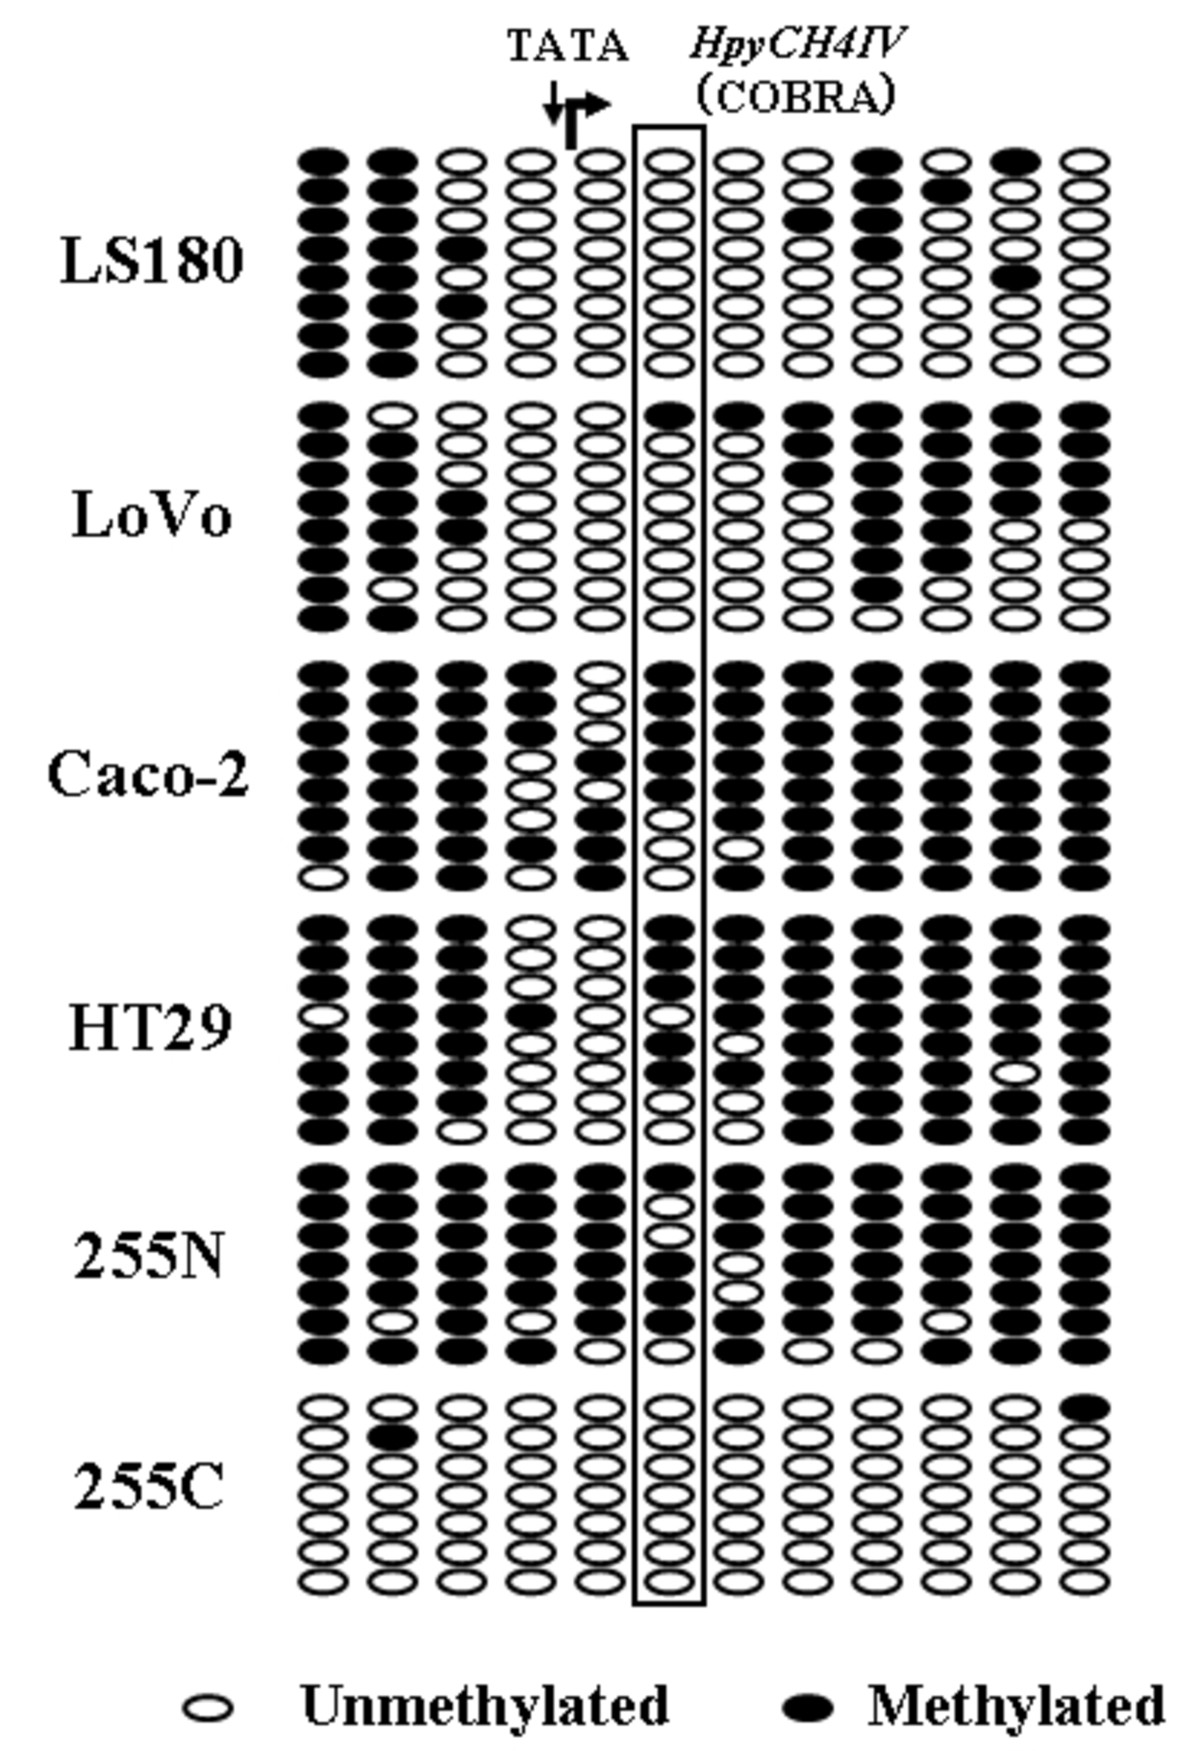 https://static-content.springer.com/image/art%3A10.1186%2F1471-2407-11-81/MediaObjects/12885_2010_Article_2573_Fig5_HTML.jpg